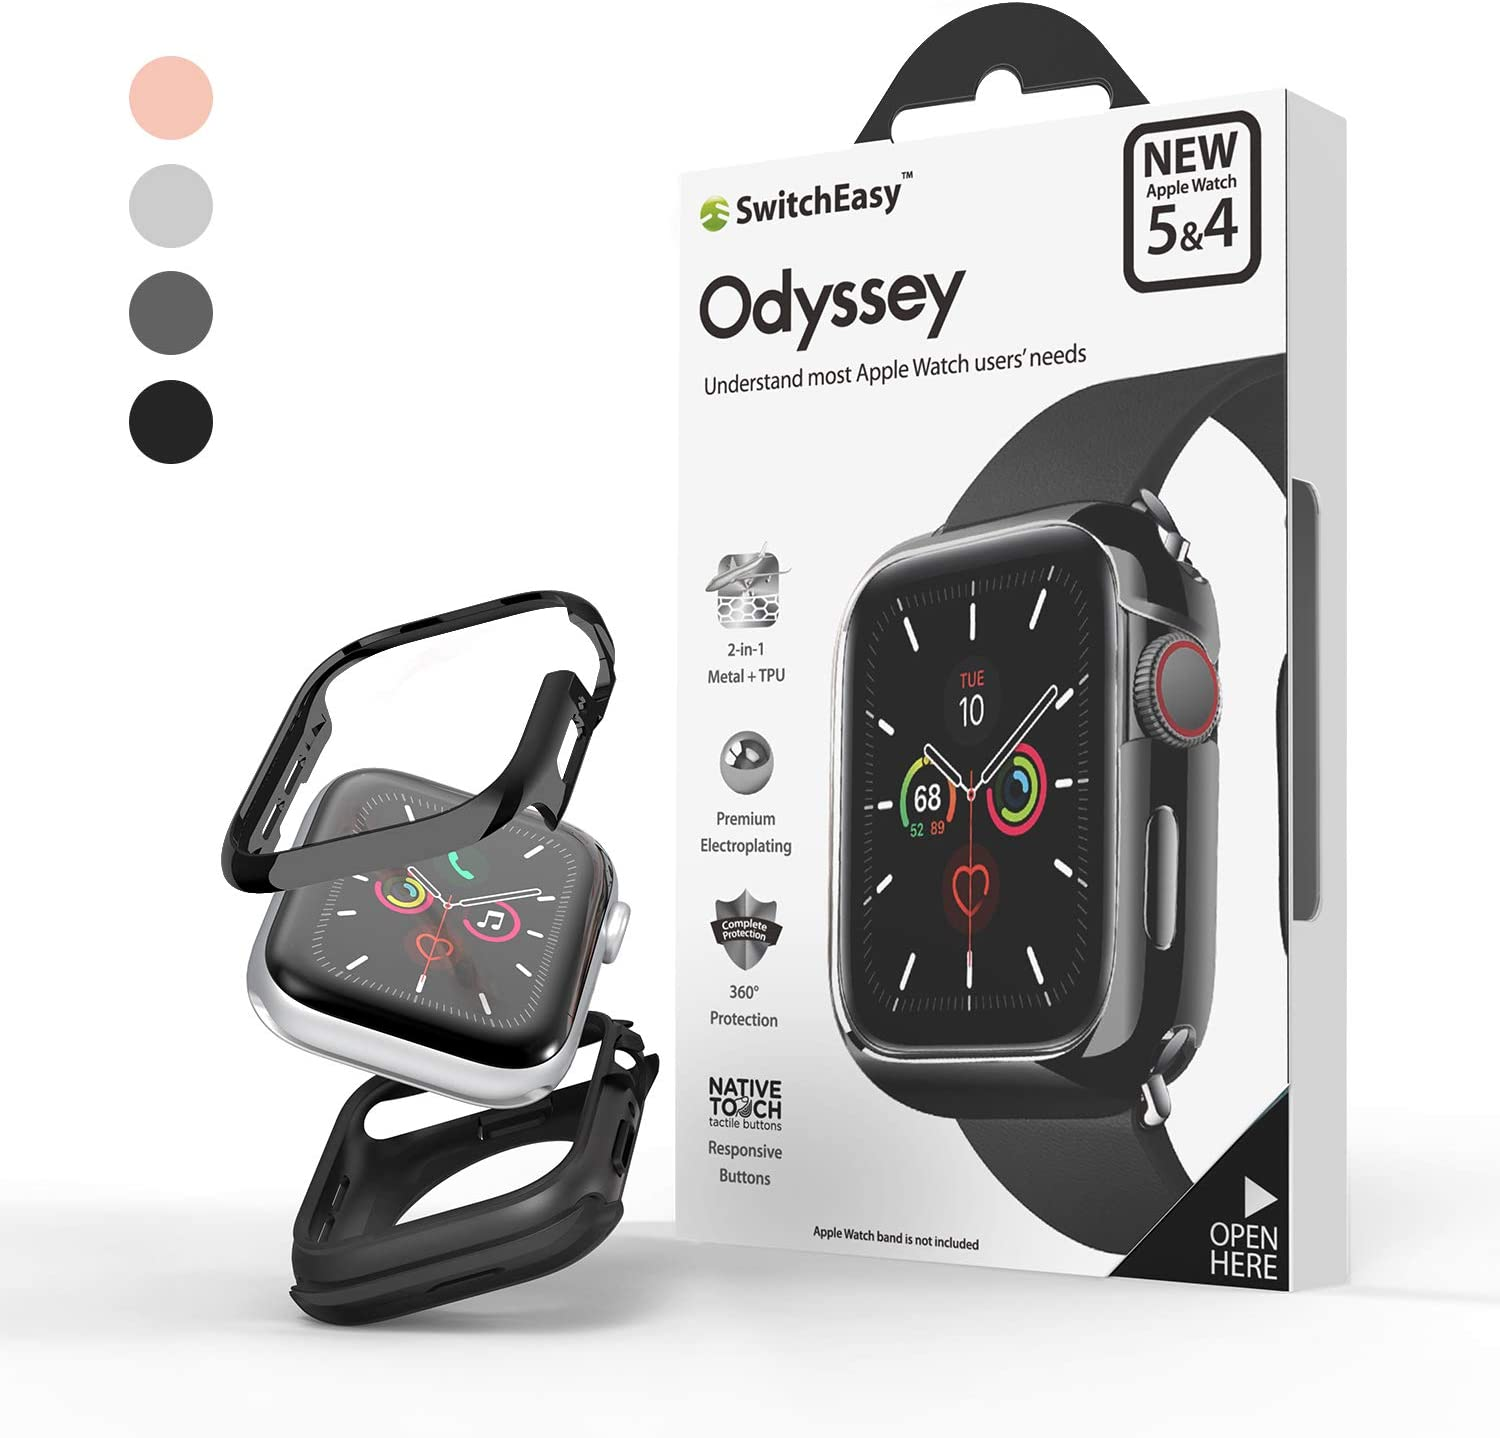 SwitchEasy Odyssey Case For Apple Watch Series 5 / Series 4, Metal + TPU Materials, Anti-Scratch, Shockproof And Flexible Protective Bumper With Exquisite Packaging Box (Flash Gray, 44mm)